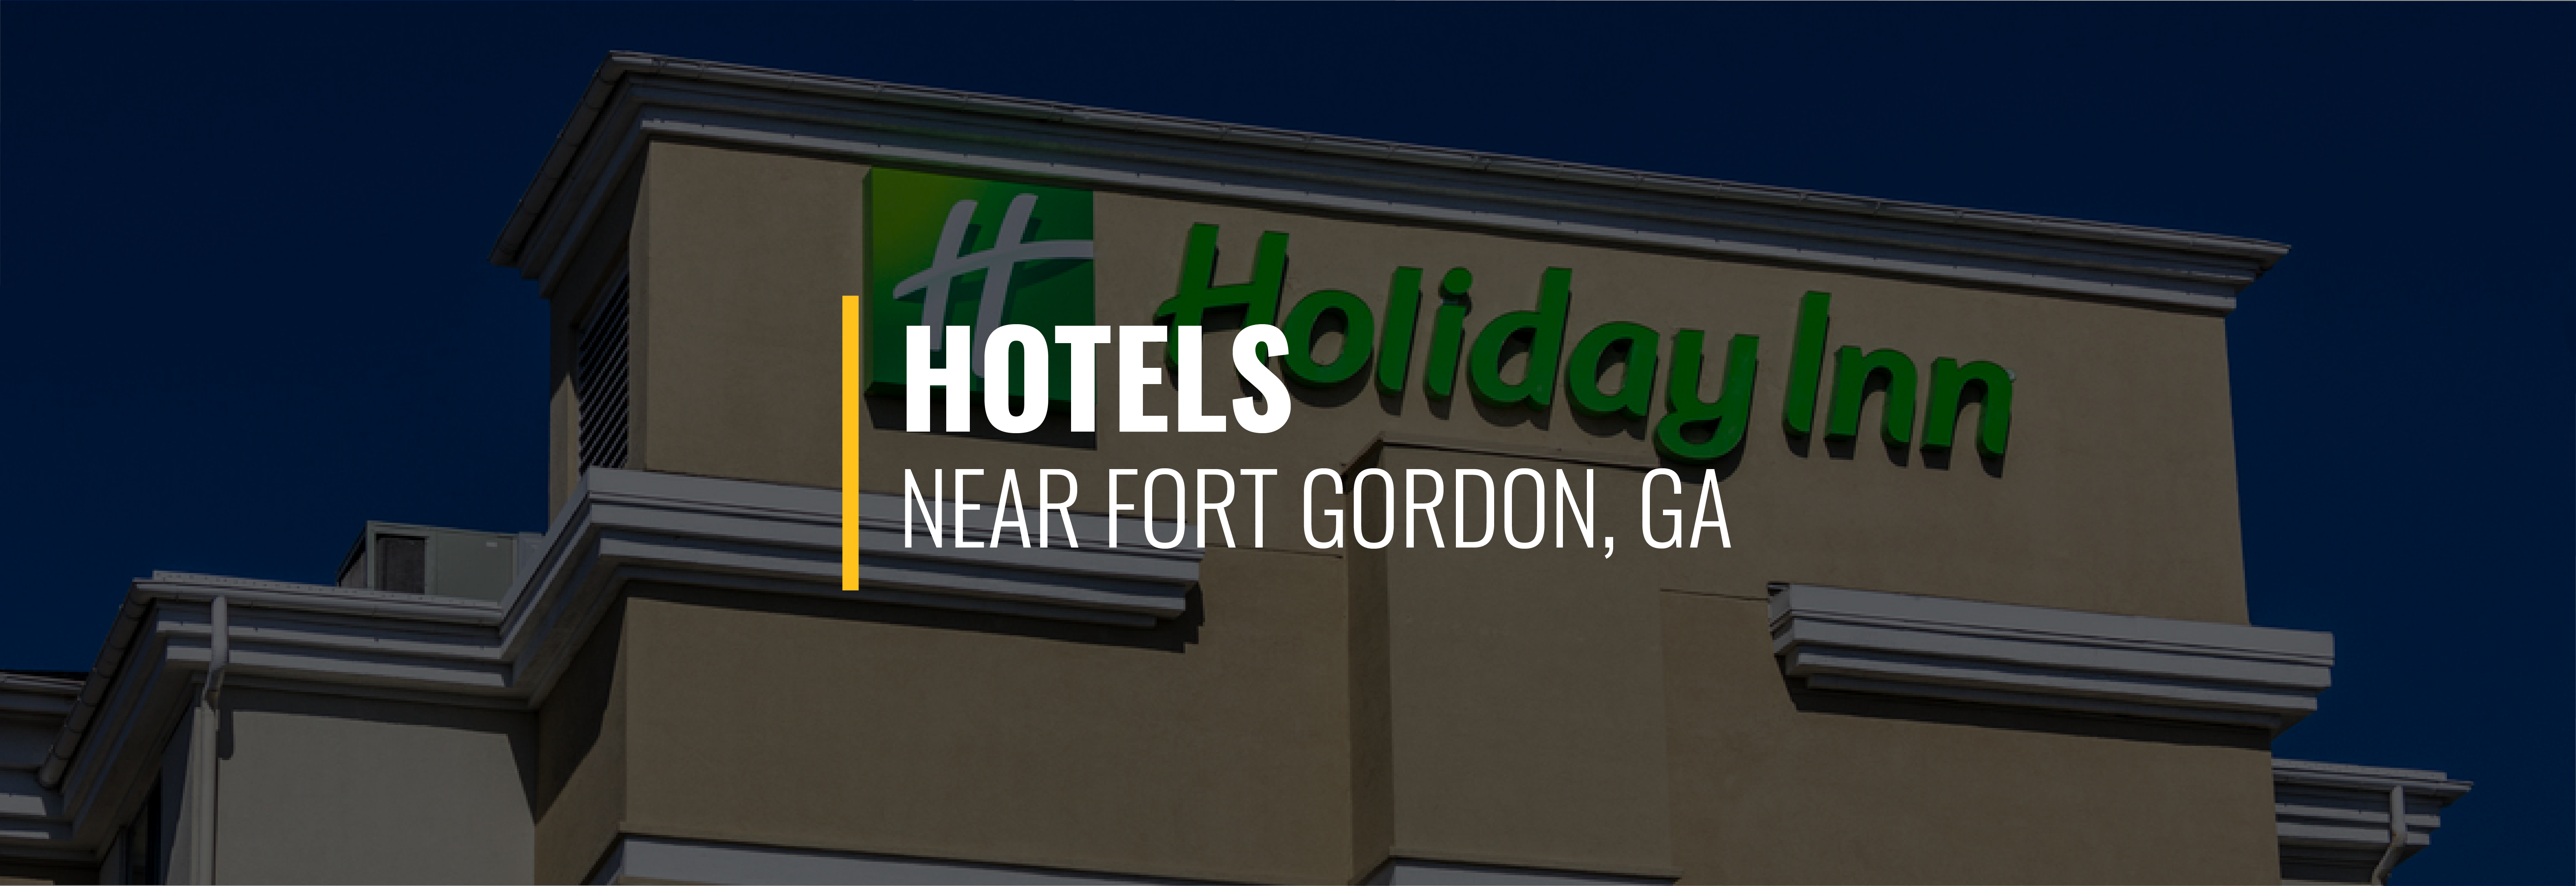 Fort Gordon Hotels